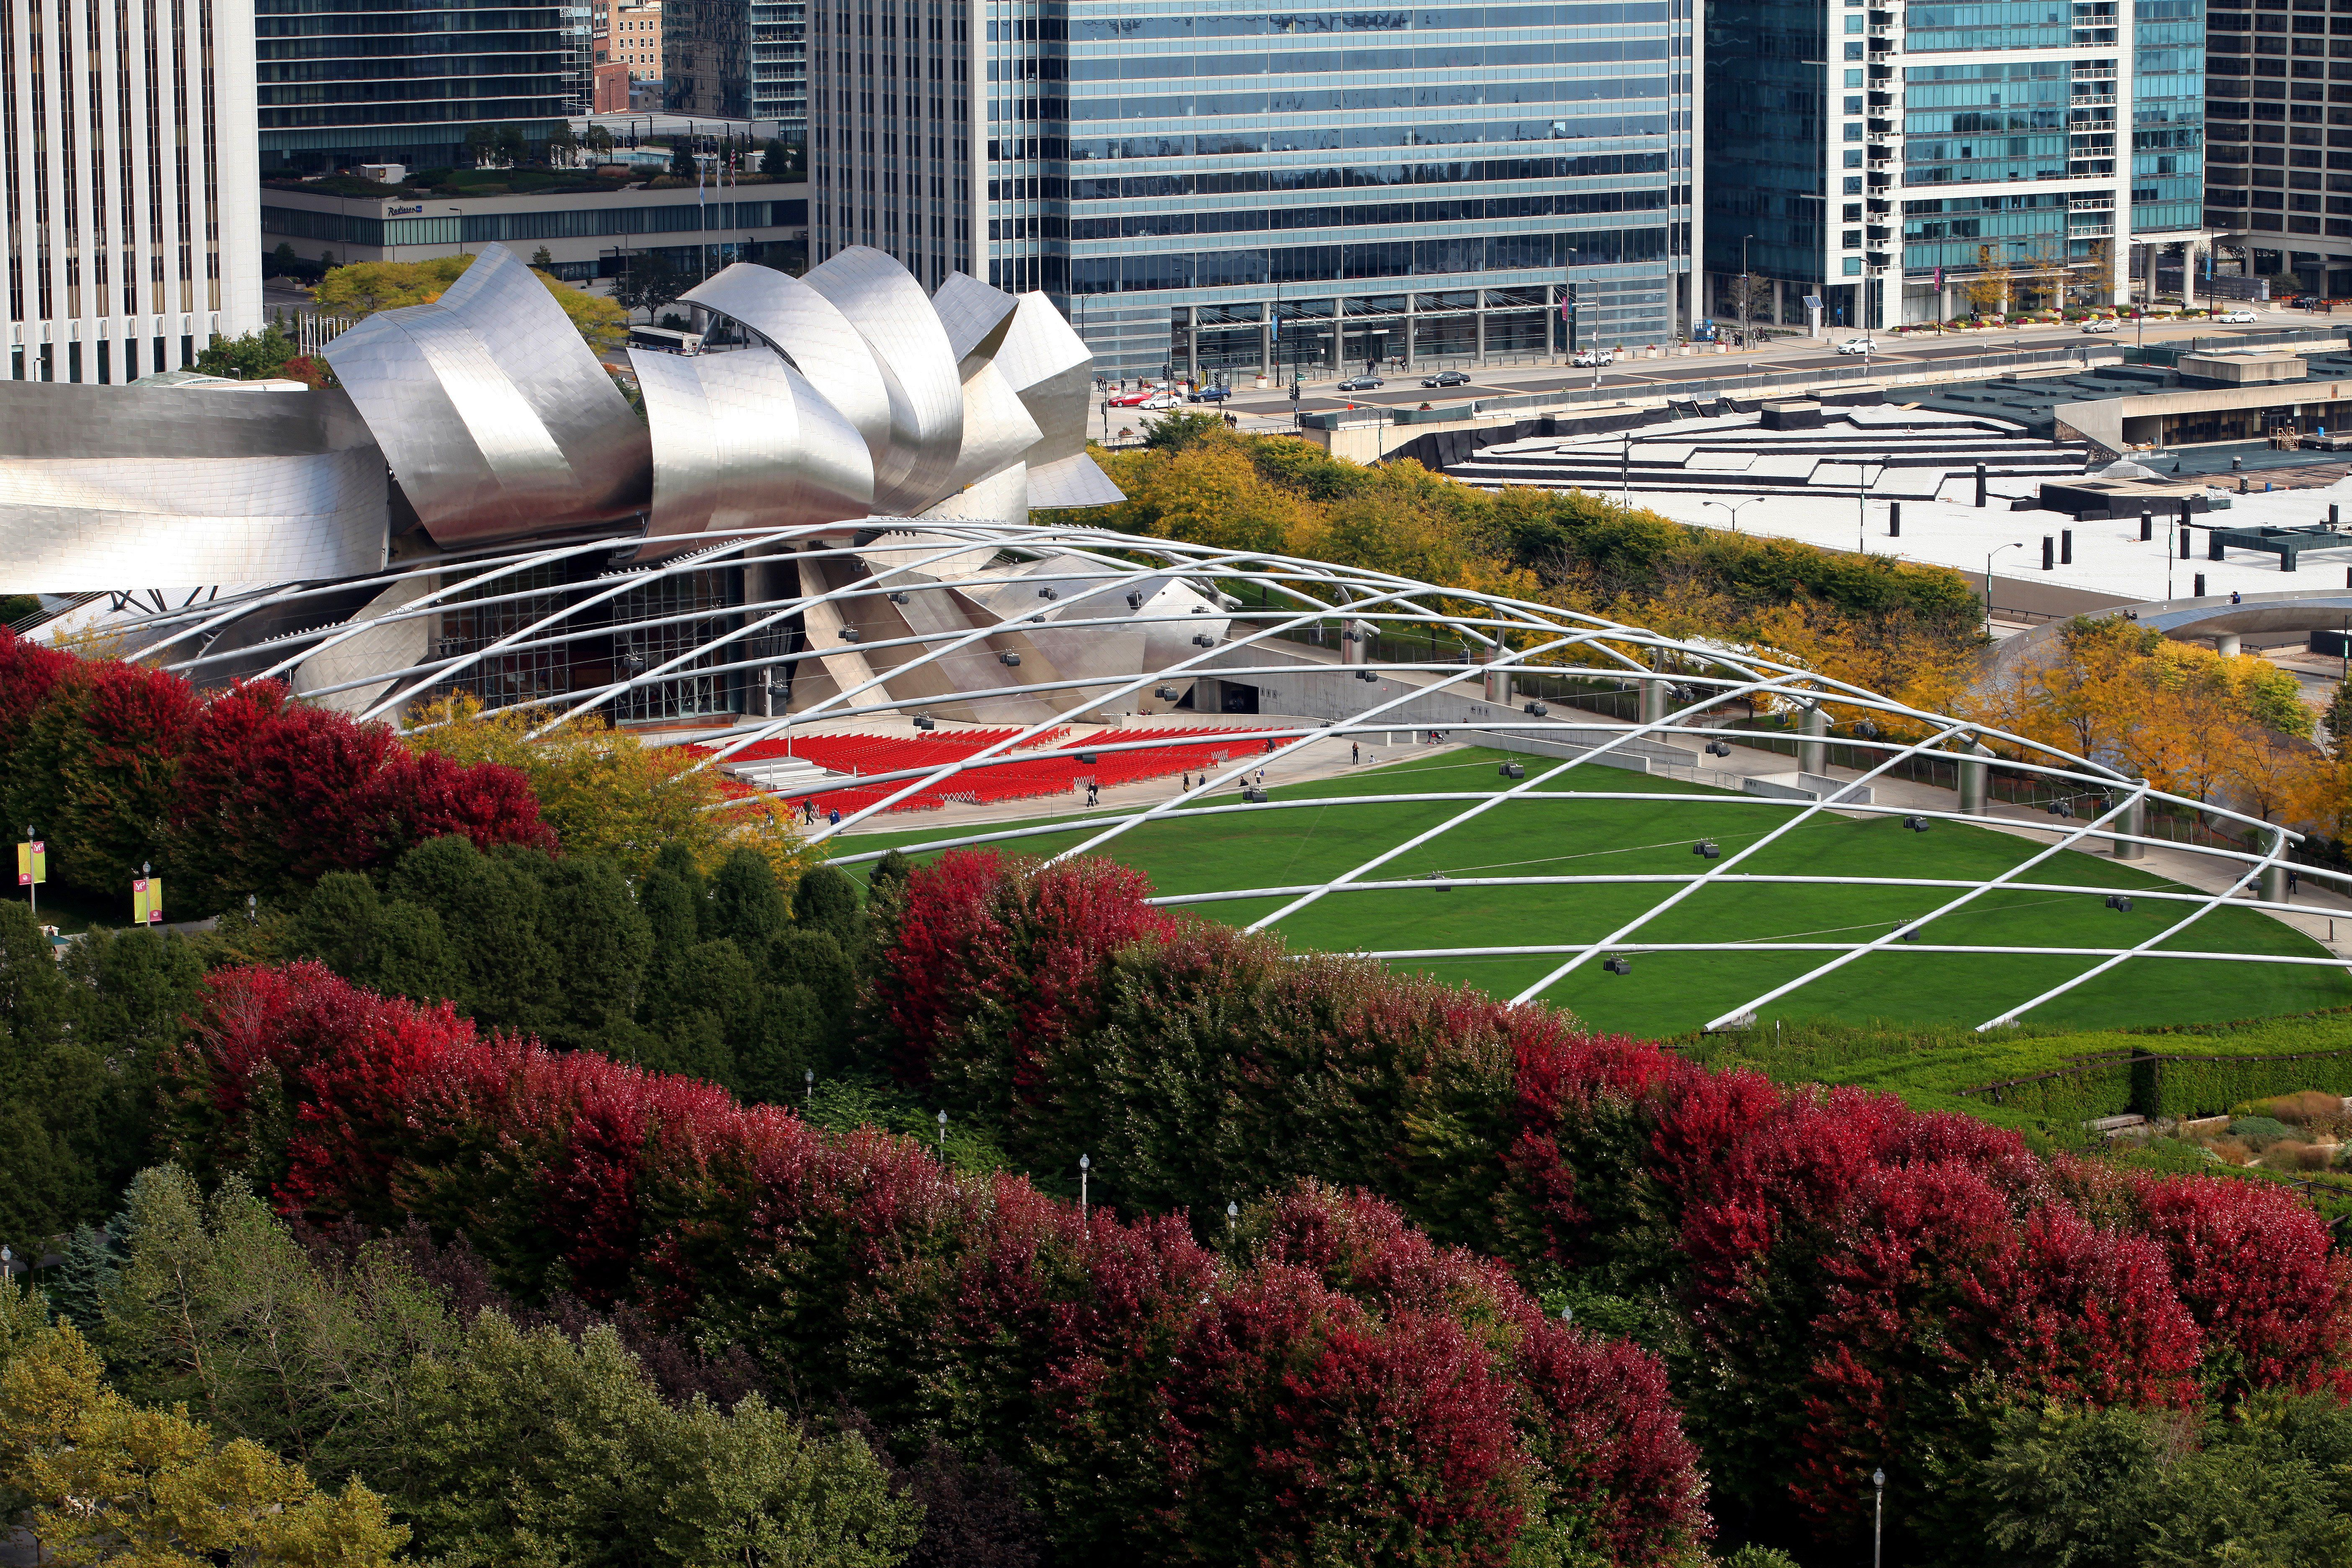 outdoor amphitheater and lawn in city setting